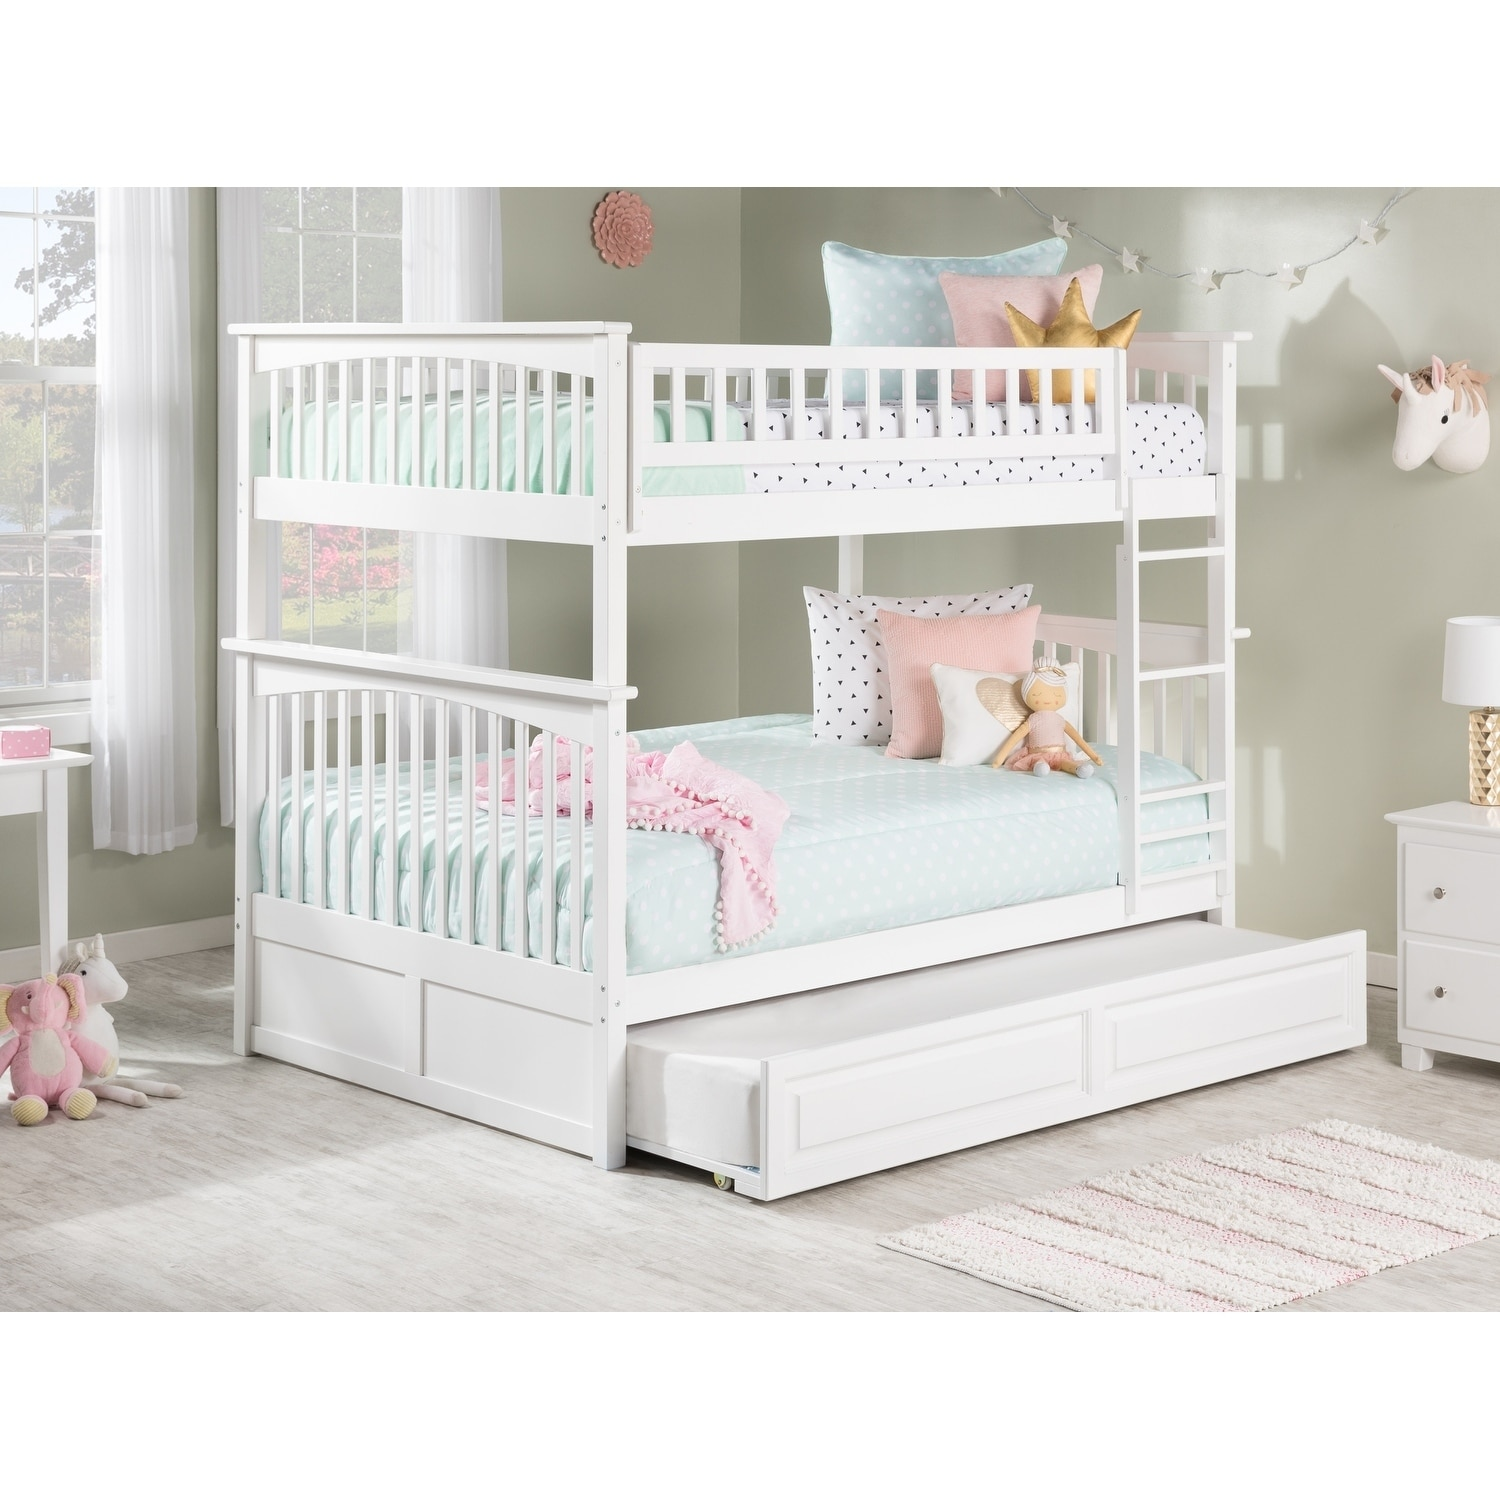 Atlantic Furniture Columbia Bunk Bed Full over Full with ...